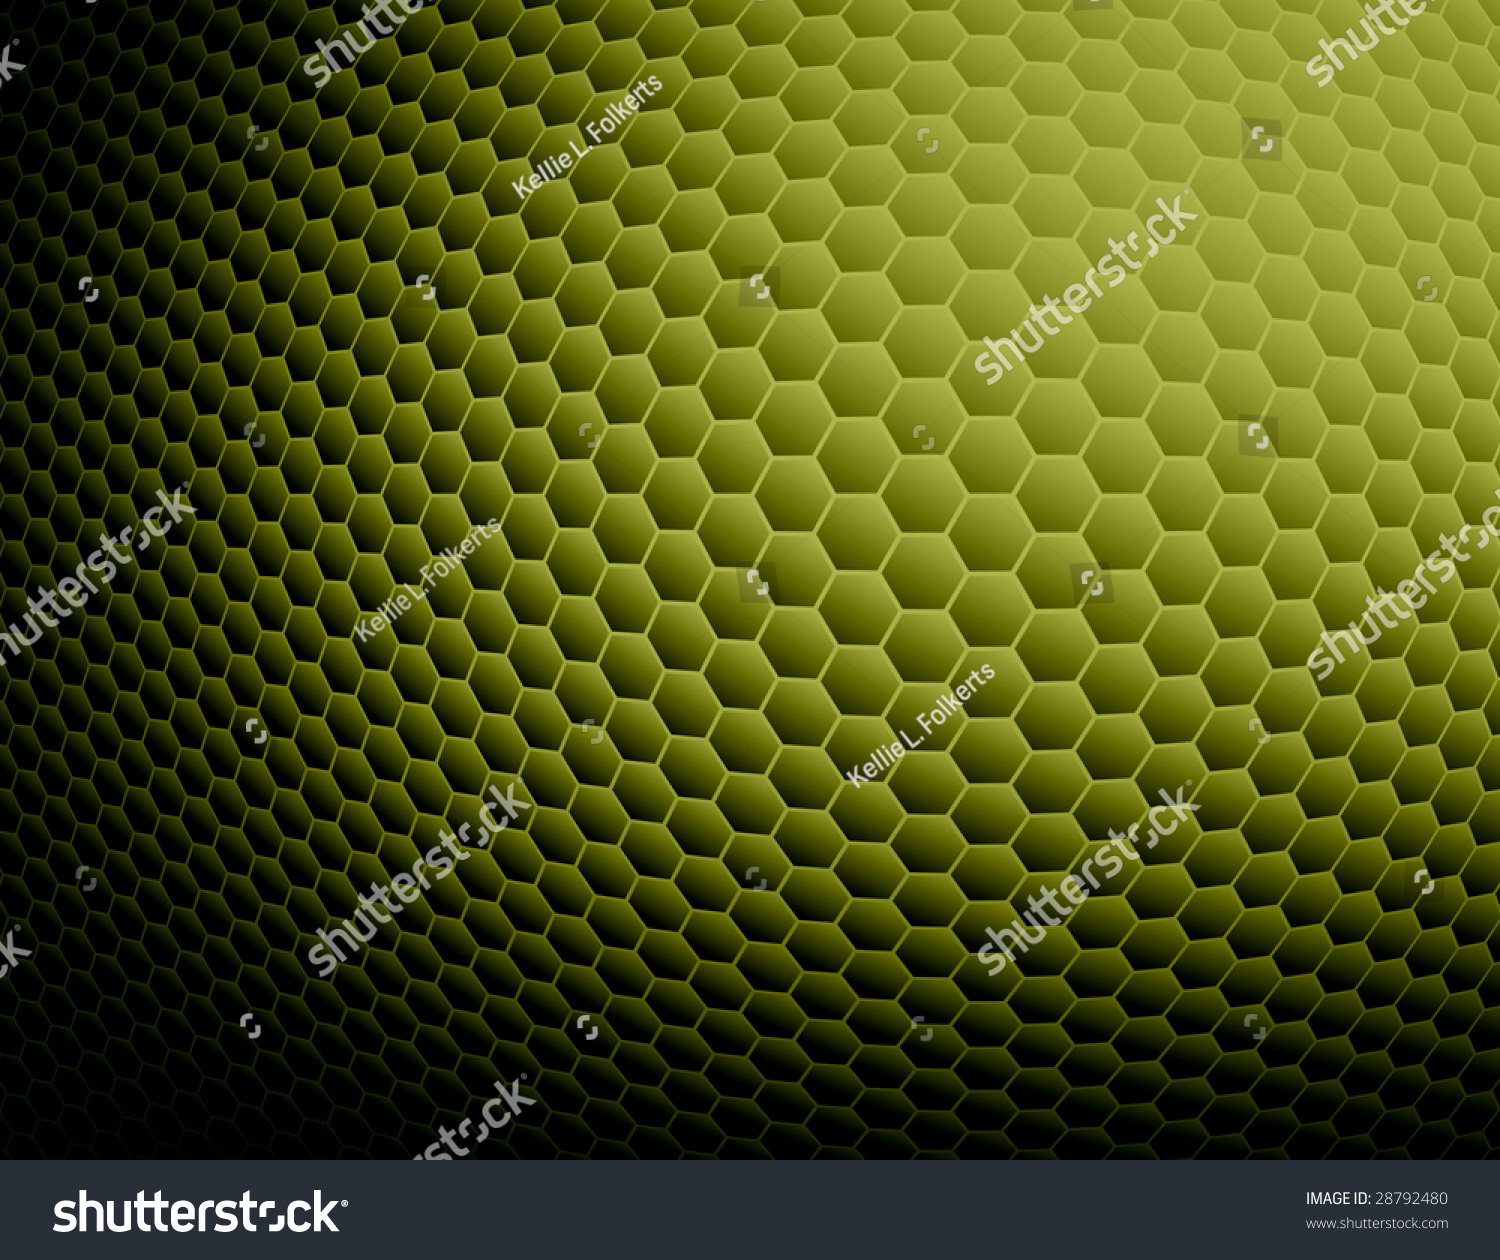 Green Abstract Honeycomb Background Stock Illustration